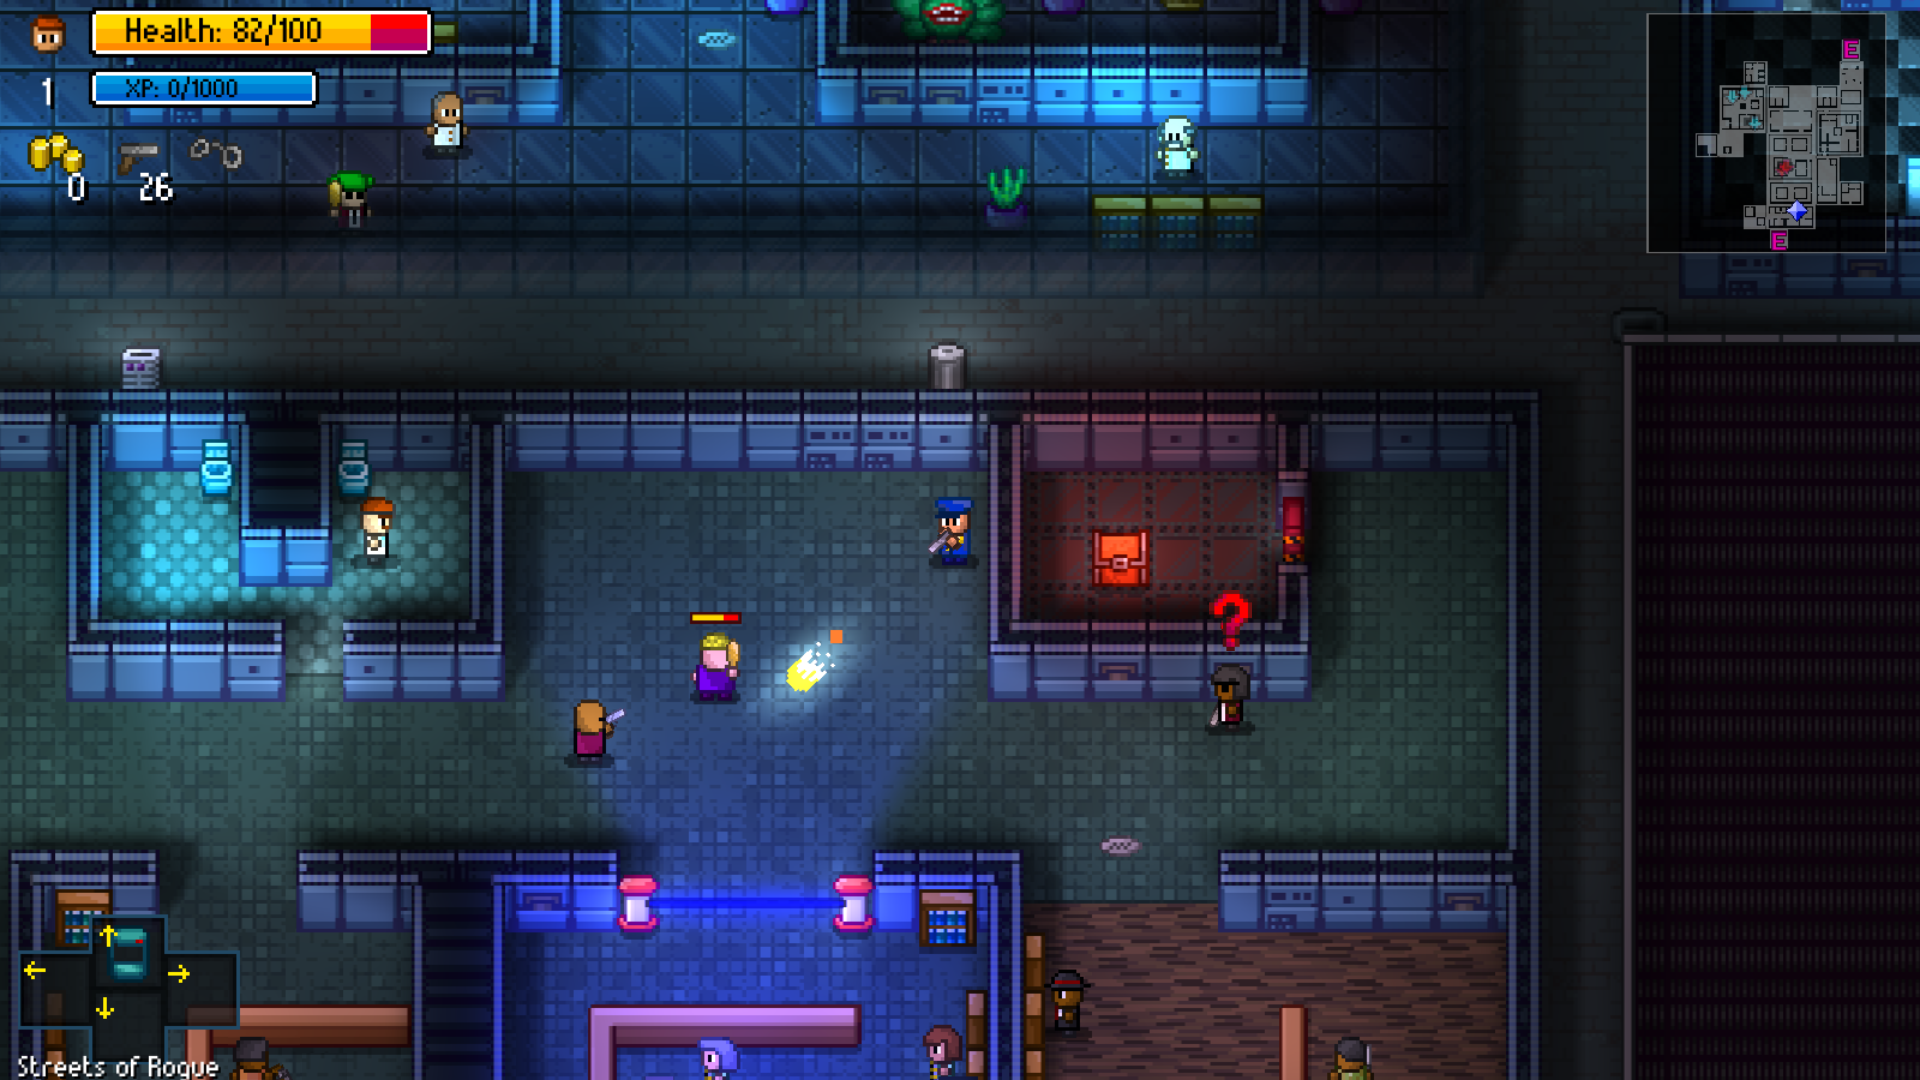 Shooting bad guys in Streets of Rogue